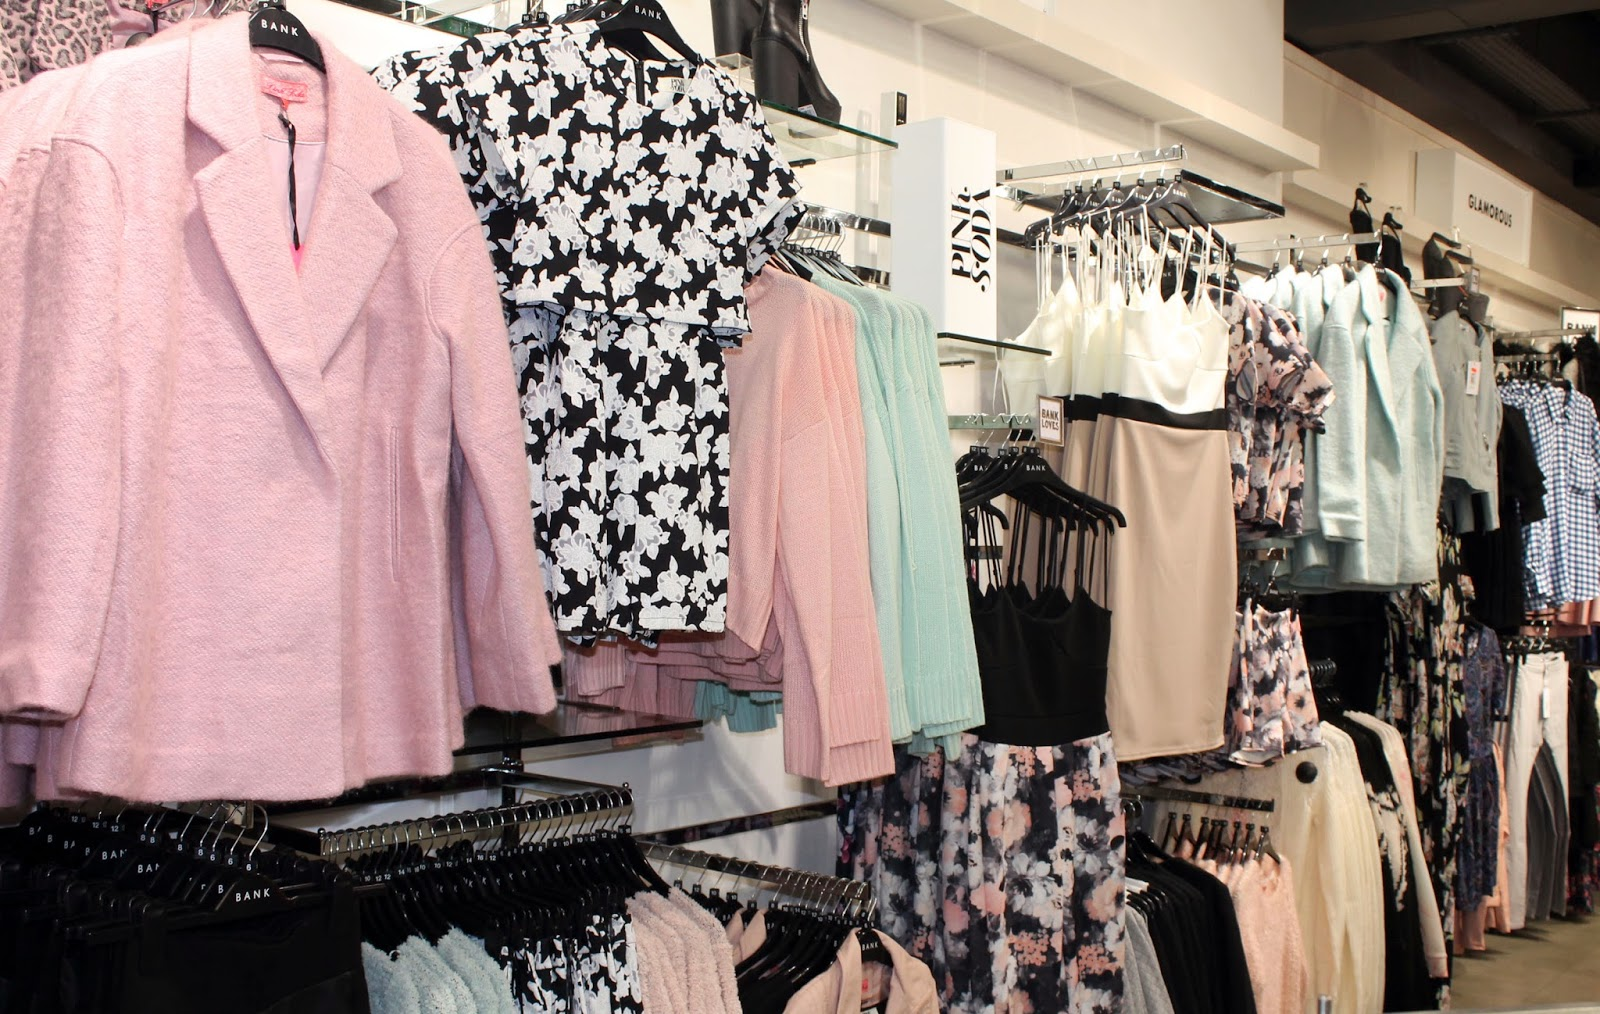 BANK fashion warrington visual merchandising pink soda